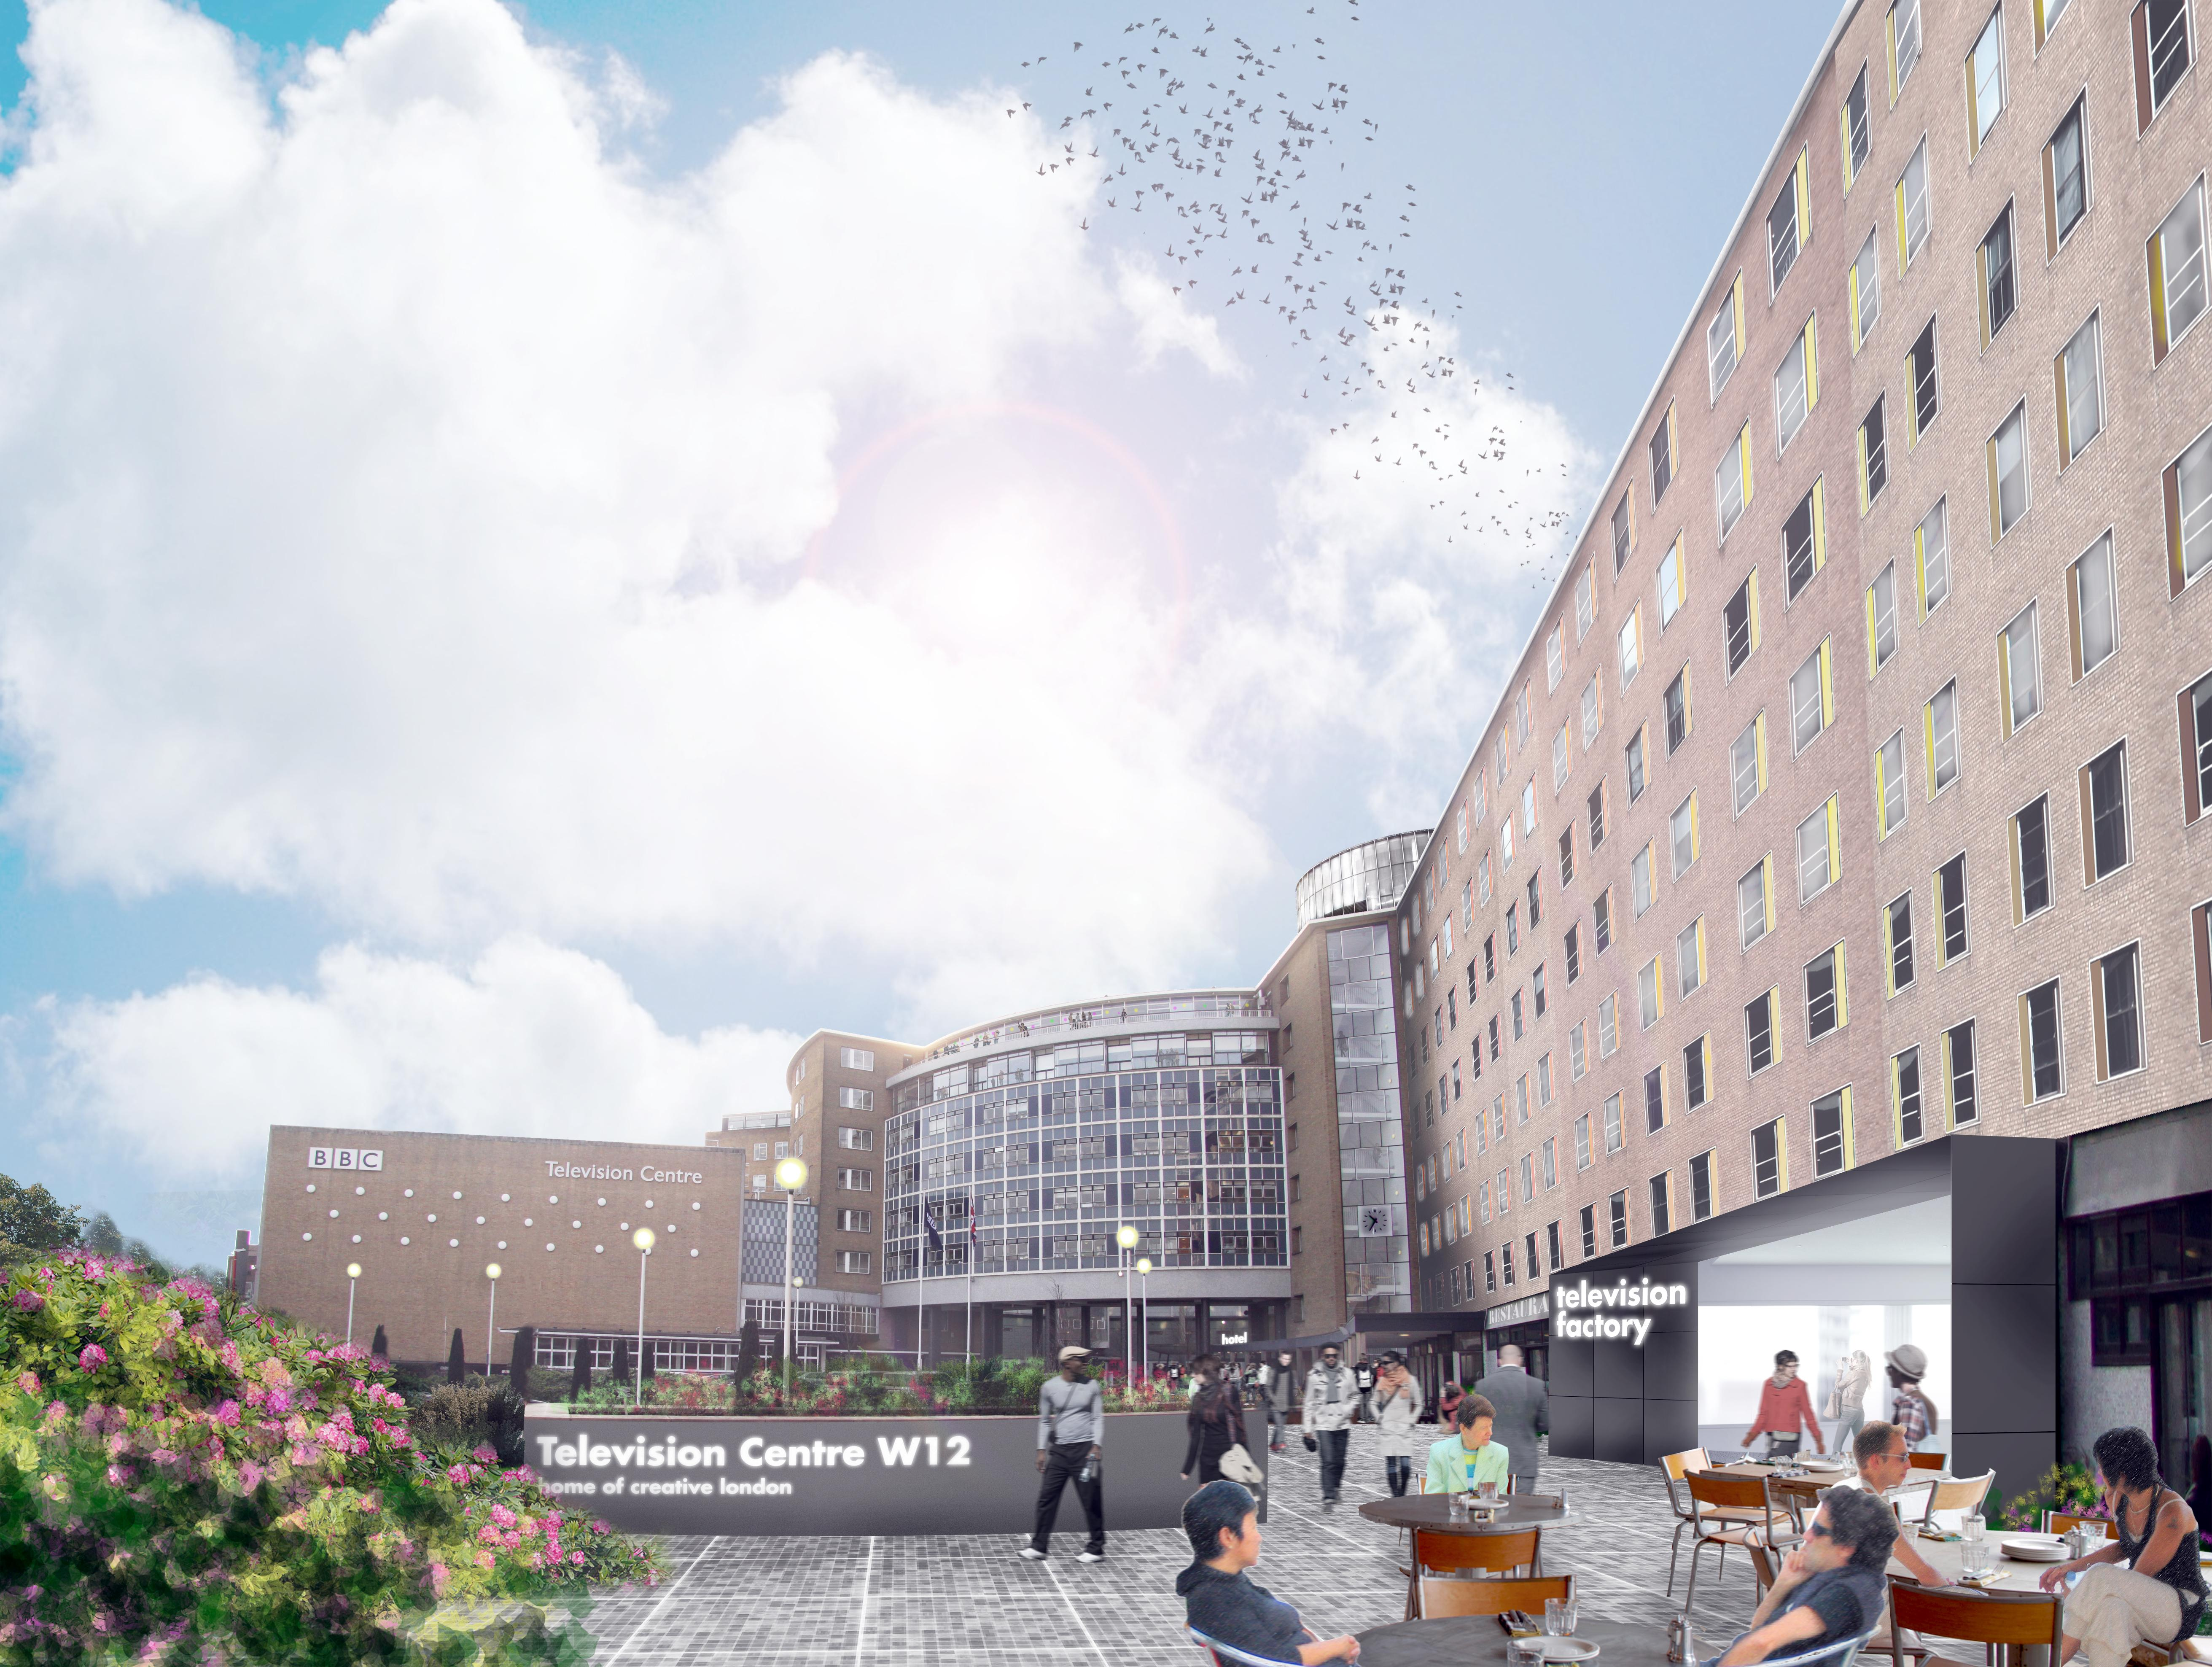 Plans Submitted For Bbc Television Centre Overhaul